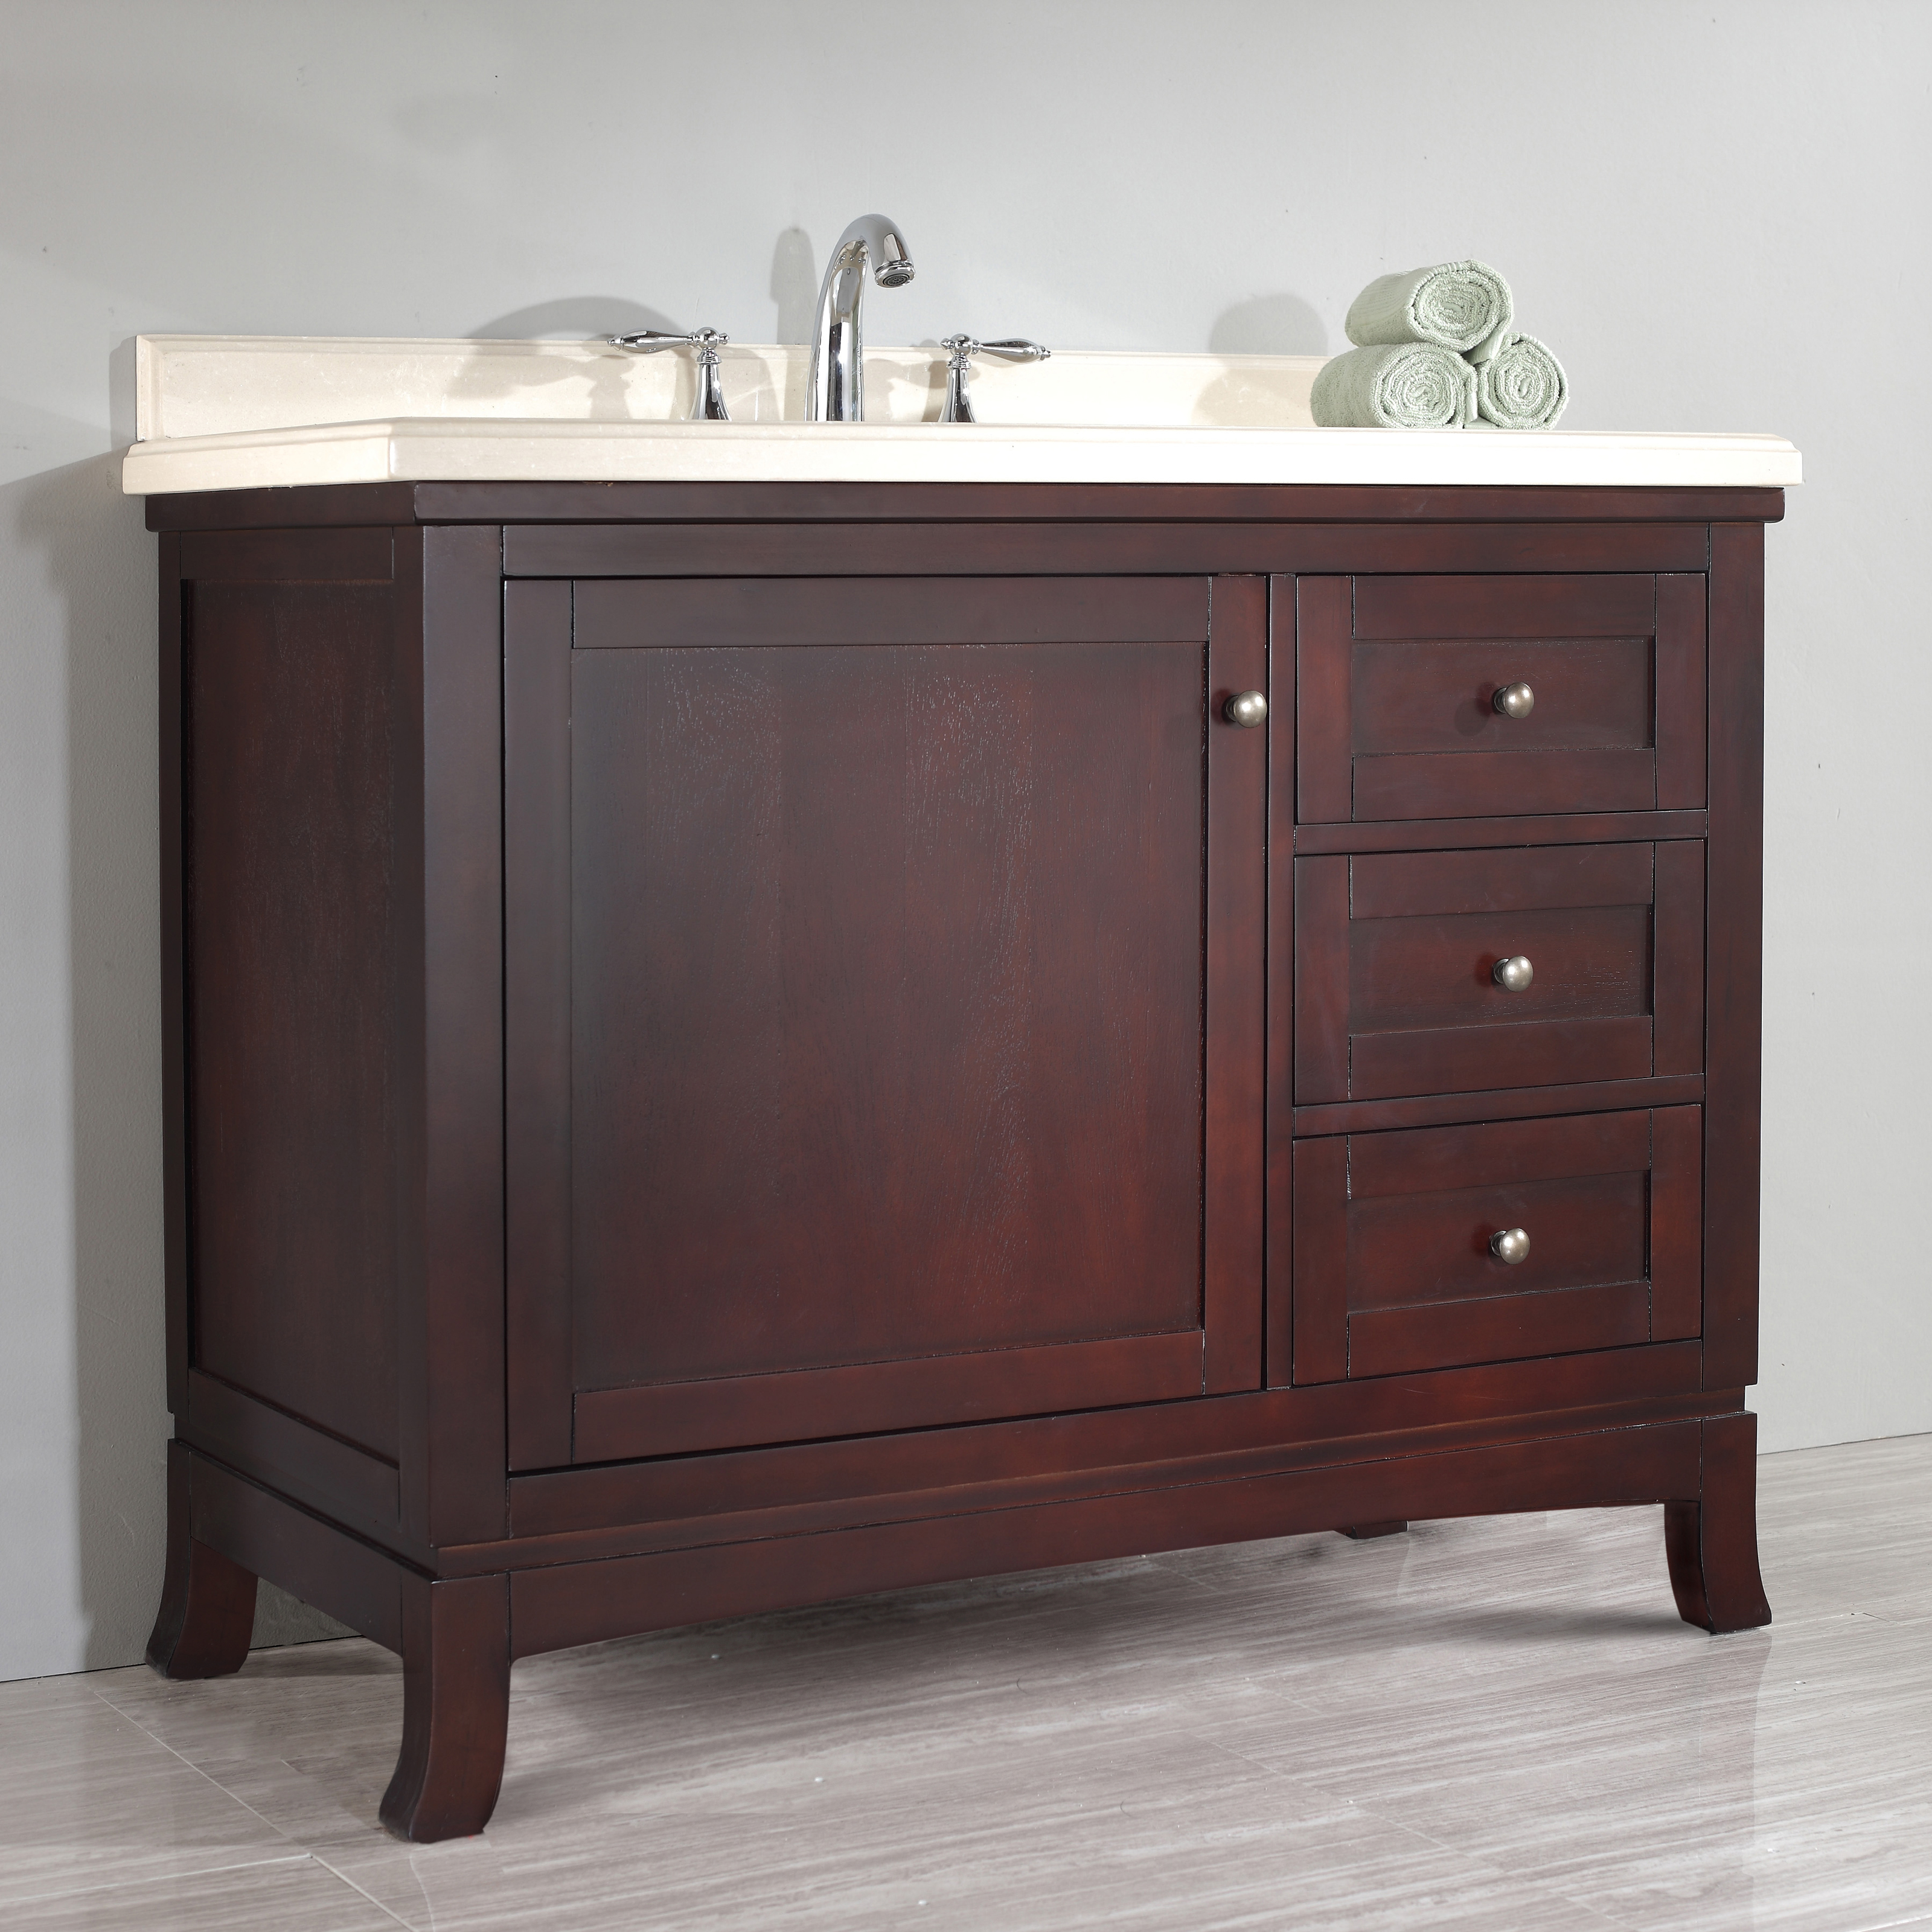 Ove Decors Valega 42 In Single Bathroom Vanity Single